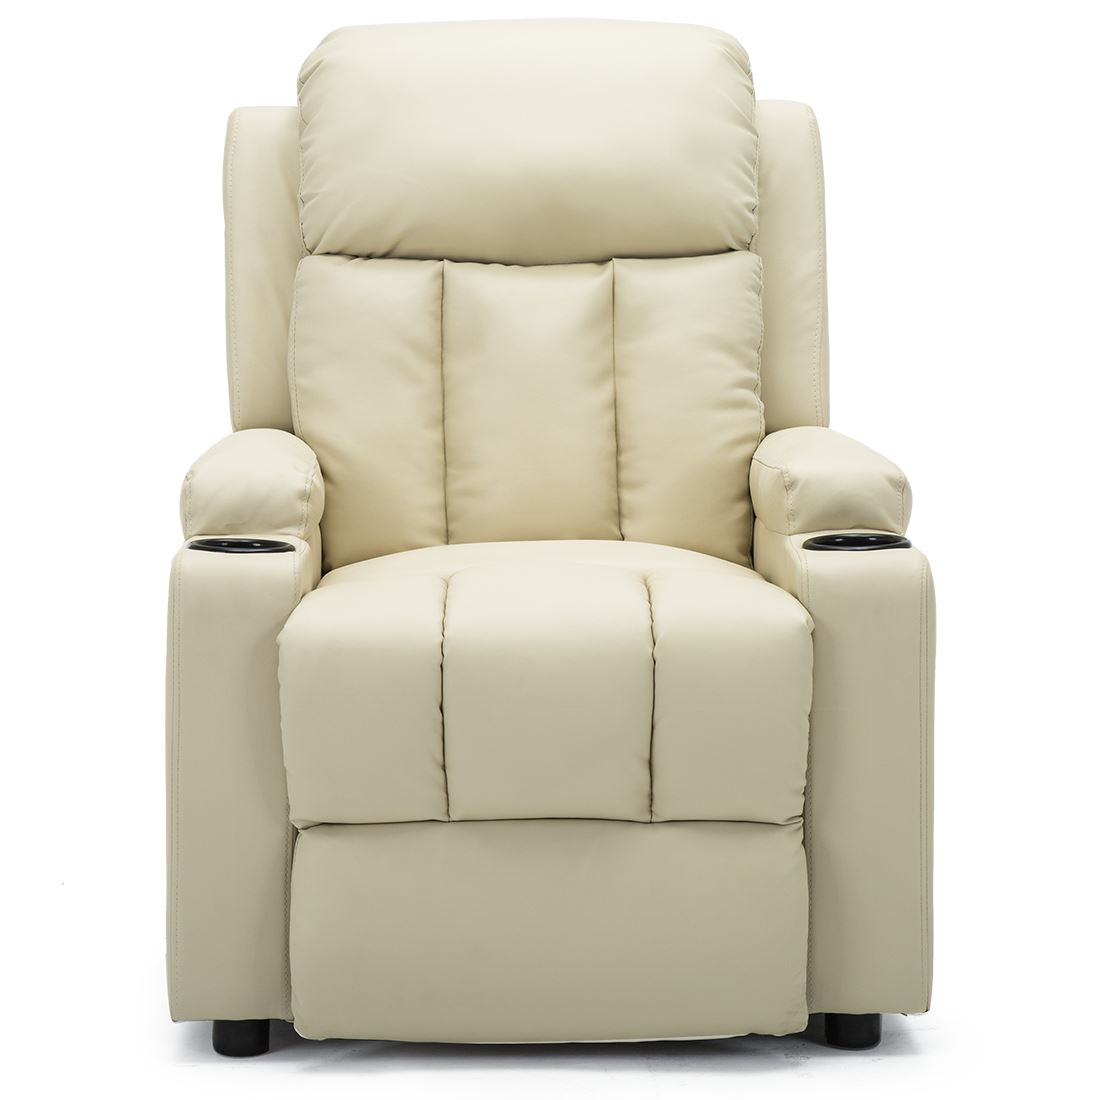 STUDIO-LEATHER-RECLINER-w-DRINK-HOLDERS-ARMCHAIR-SOFA-CHAIR-CINEMA-GAMING thumbnail 21